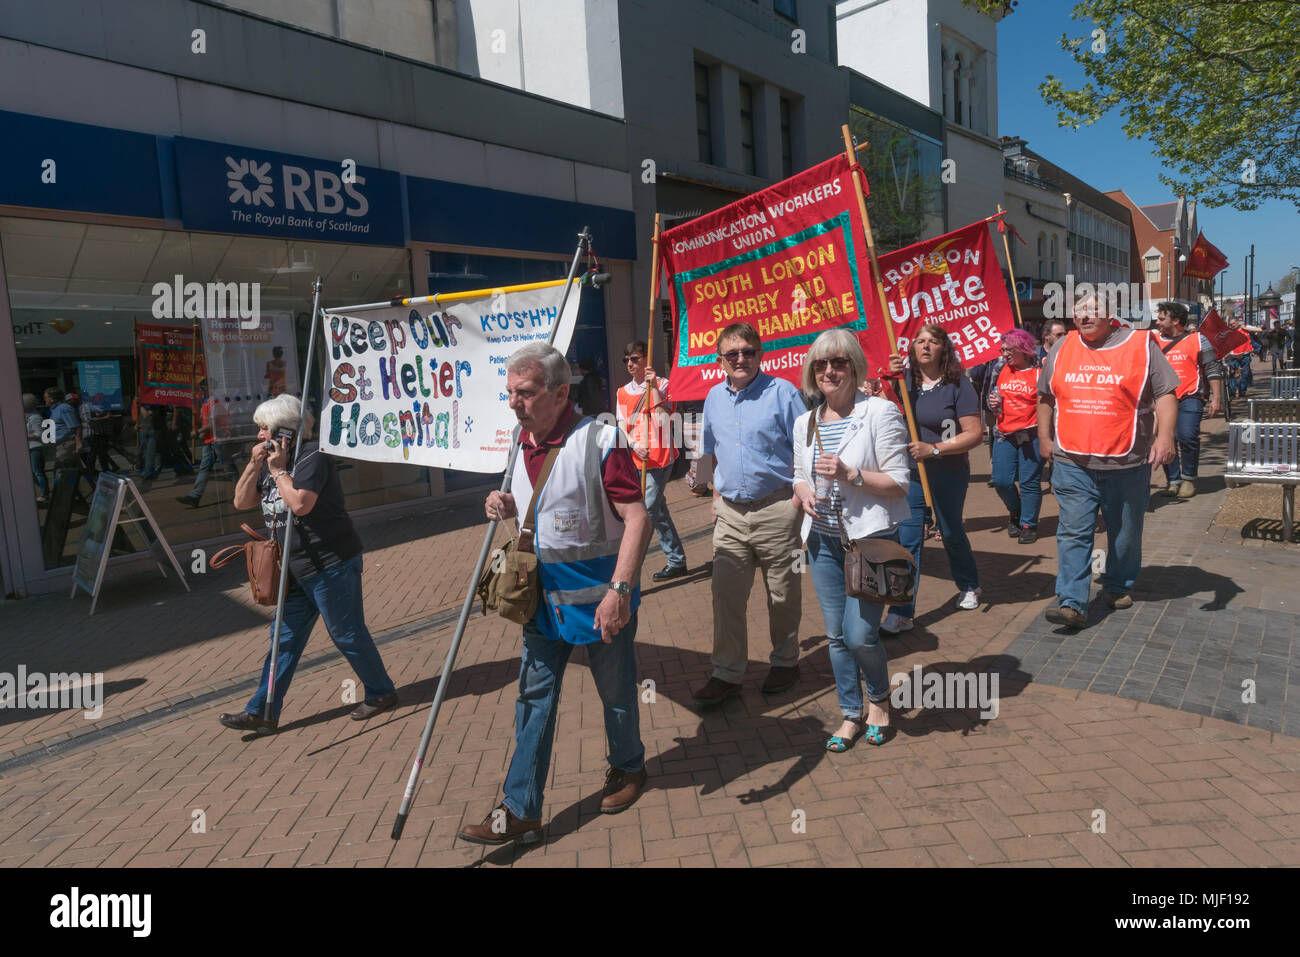 London, UK. 5th March 2018. Trade unionists and other socialists with posters and banners on the march through Croydon town centre to a rally at Ruskin House in celebration of May Day, International Workers Day which is celebrated internationally on May 1st.  Unfortunately May Day is not a Bank Holiday in the UK. The marchers were lead through the main shopping street by a piper and drummer in full Scots dress, attracting the attention of shoppers and others on the busy street. I left the march before it reached Ruskin House where there was to be a rally with speakers including Ted Knight. Pet Stock Photo